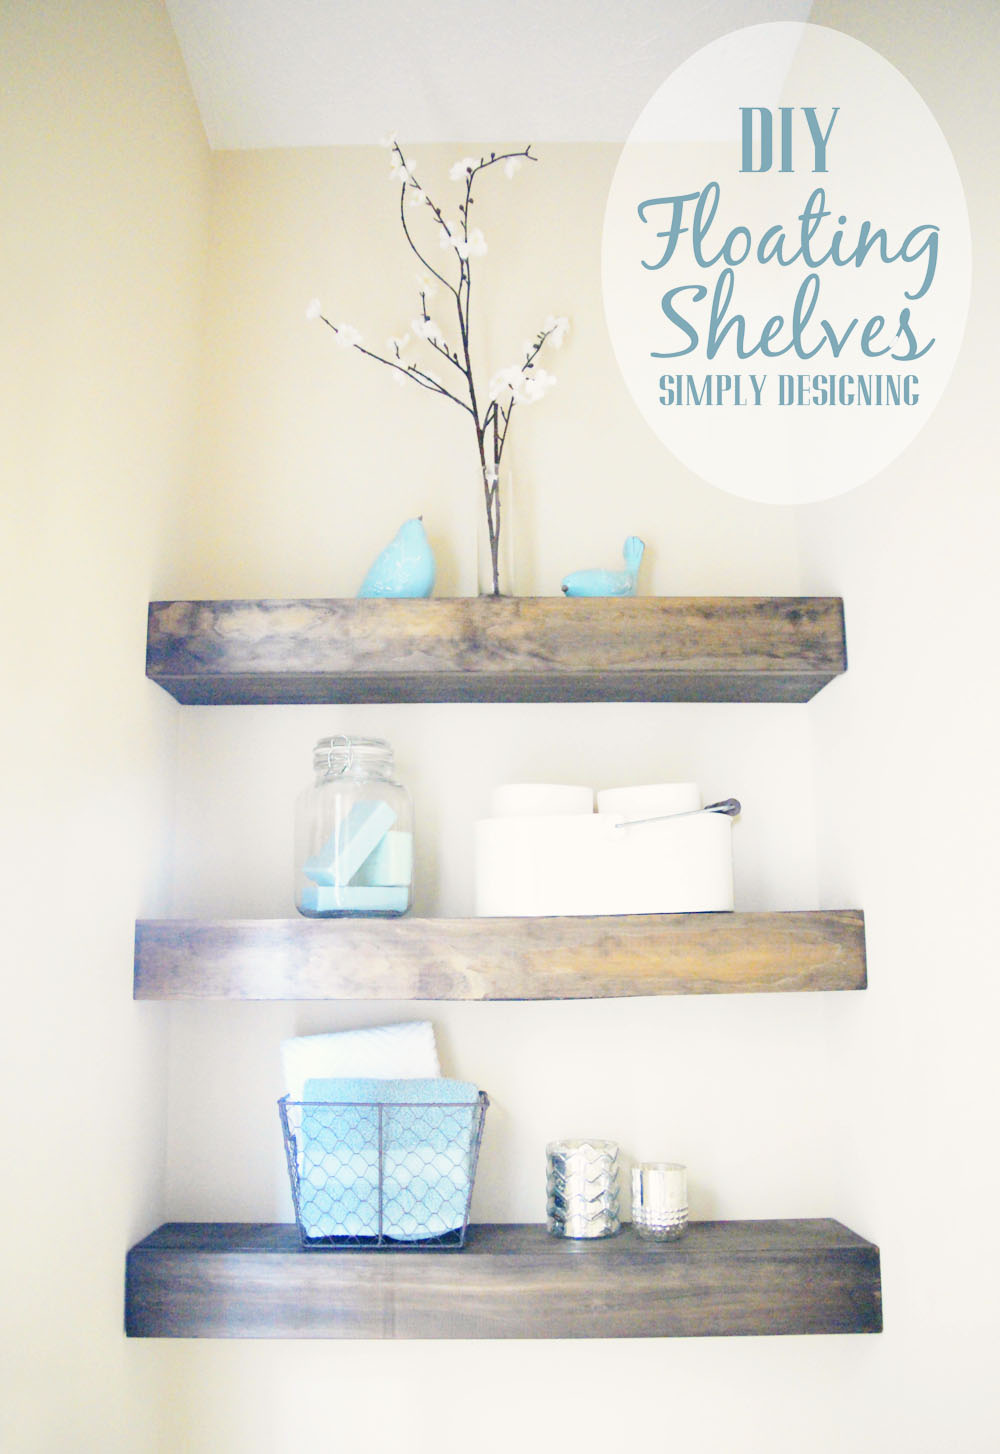 diy floating shelves how measure cut and install wood bathroom are really easy make they the perfect wildberry maple corner shelf wall with towel bar kitchen carts islands utility